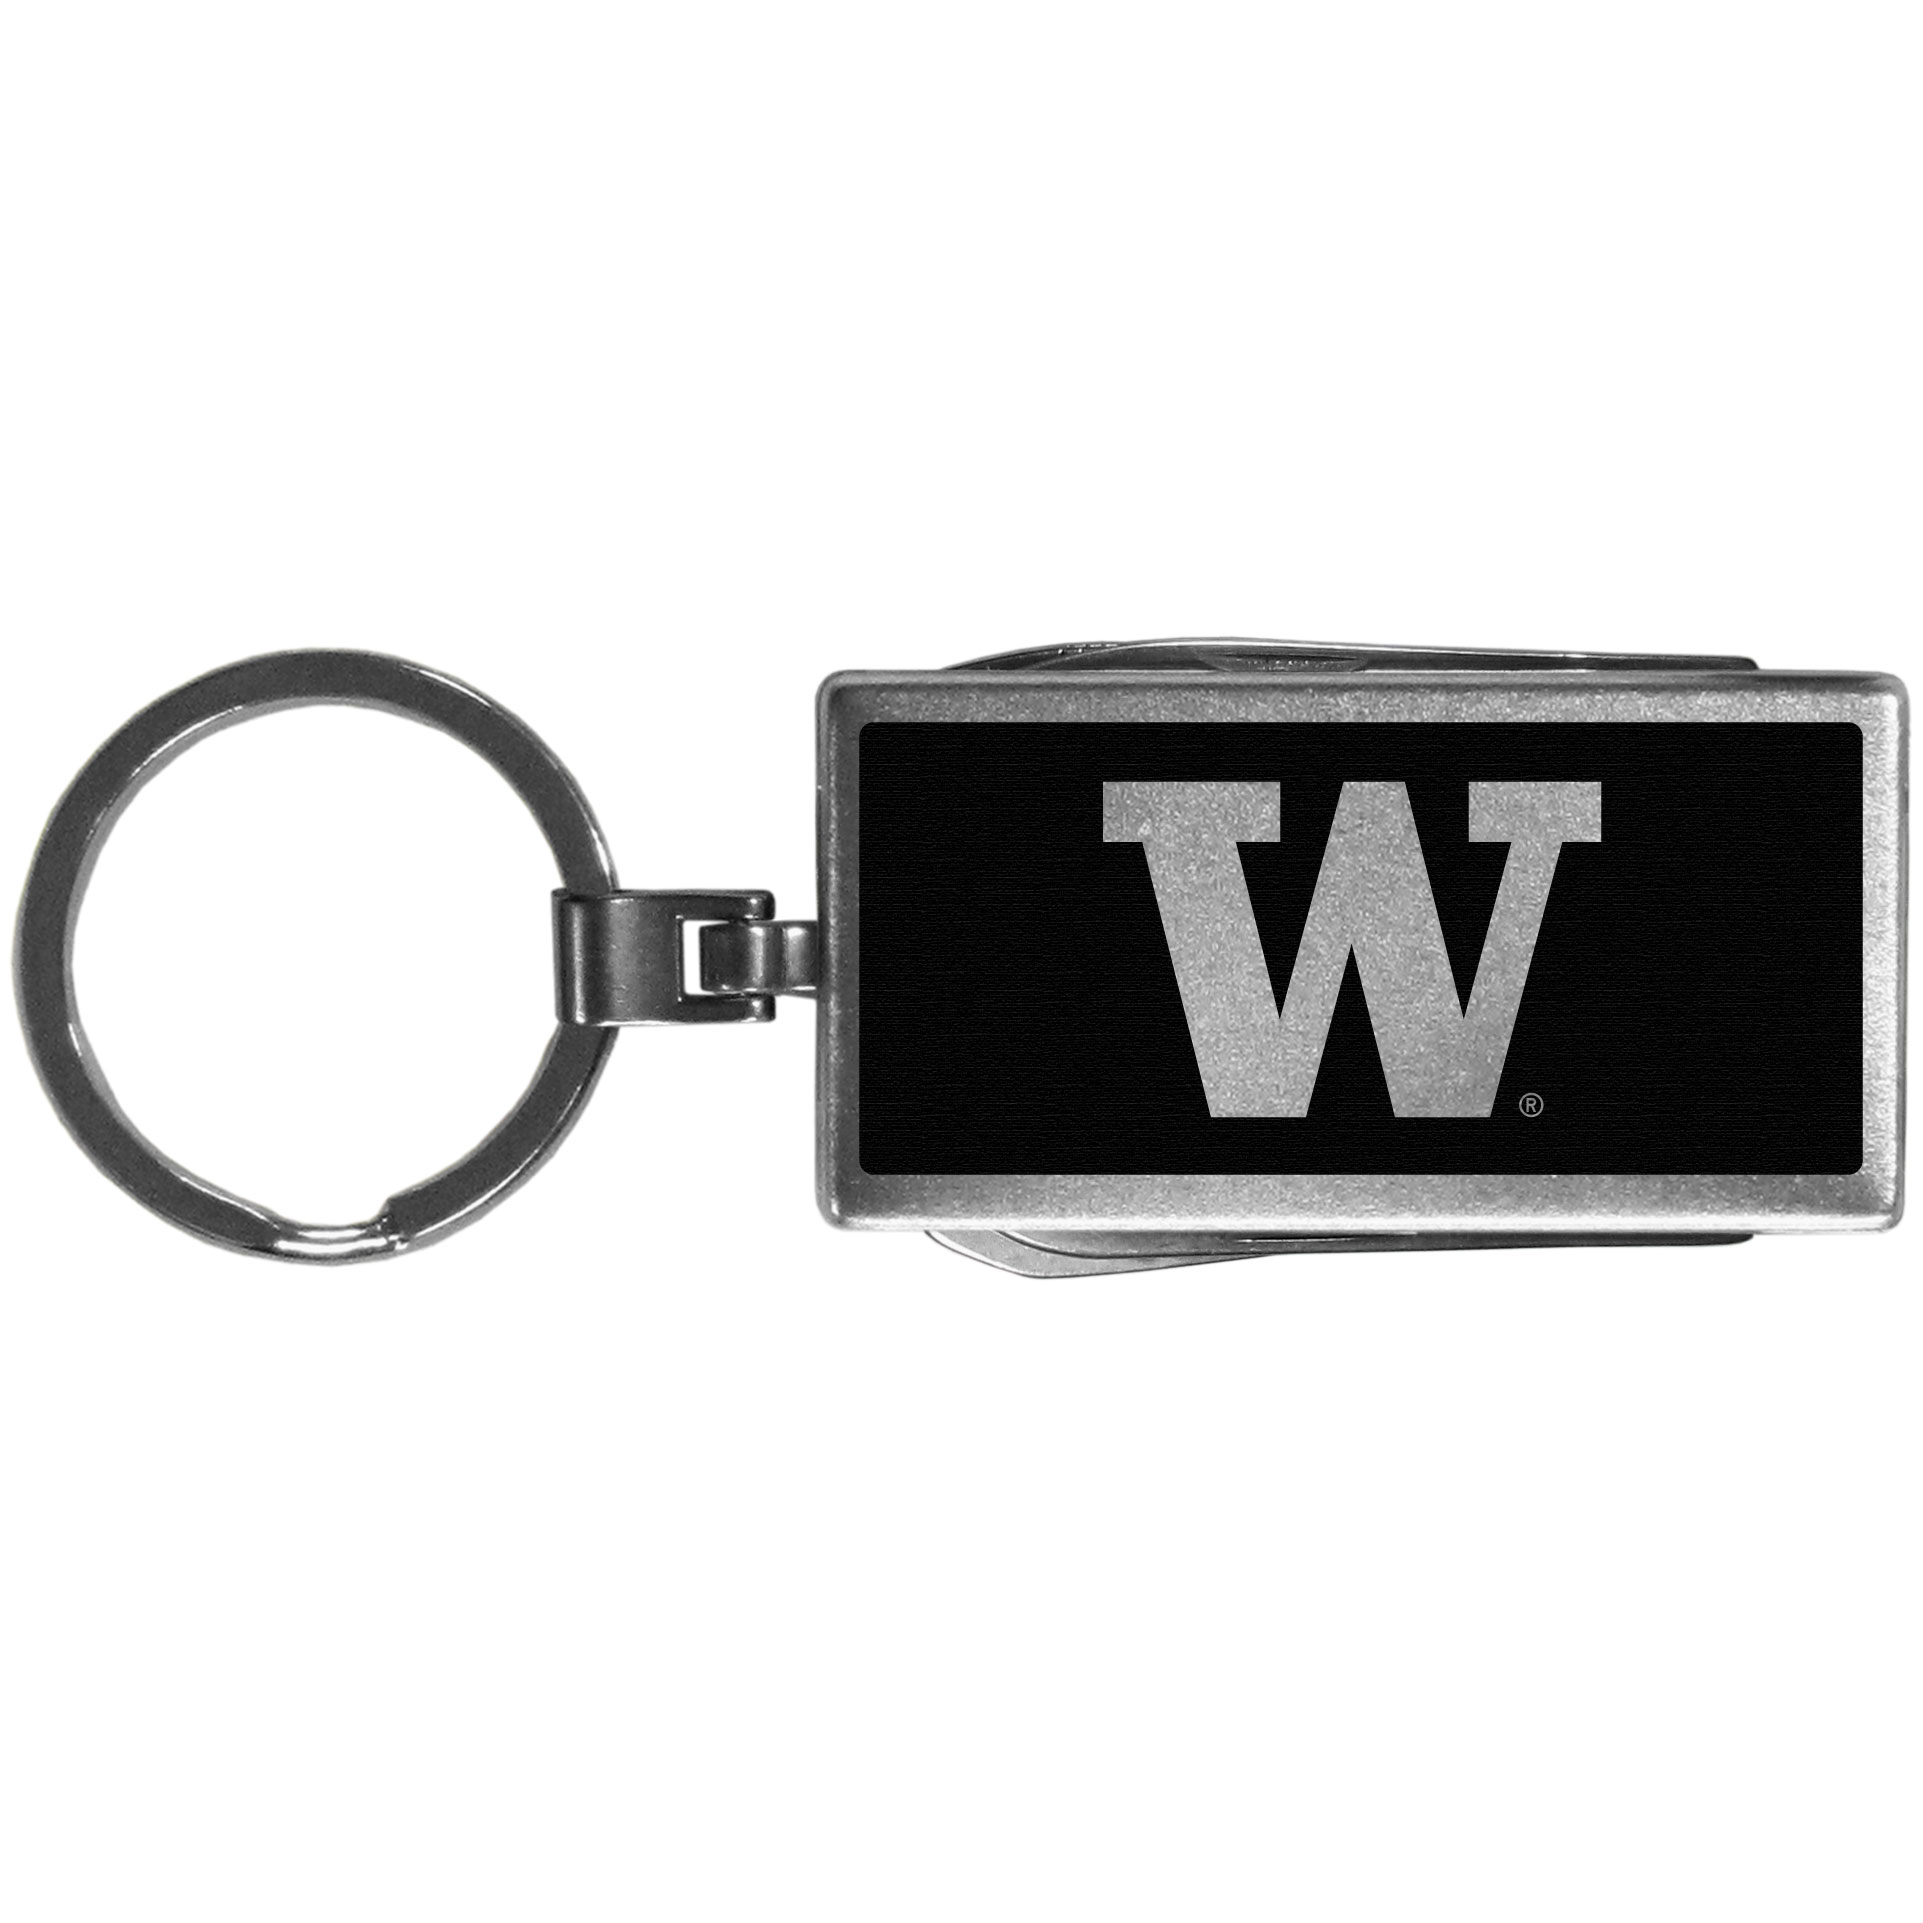 Washington Huskies Multi-tool Key Chain, Black - Be the hero at the tailgate, camping, or on a Friday night with your Washington Huskies Multi-Tool Keychain which comes complete with bottle opener, scissors, knife, nail file and screw driver. Be it opening a package or a beverage Siskiyou's Multi-Tool Keychain goes wherever your keys do. The keychain hangs at 4 inches long when closed.